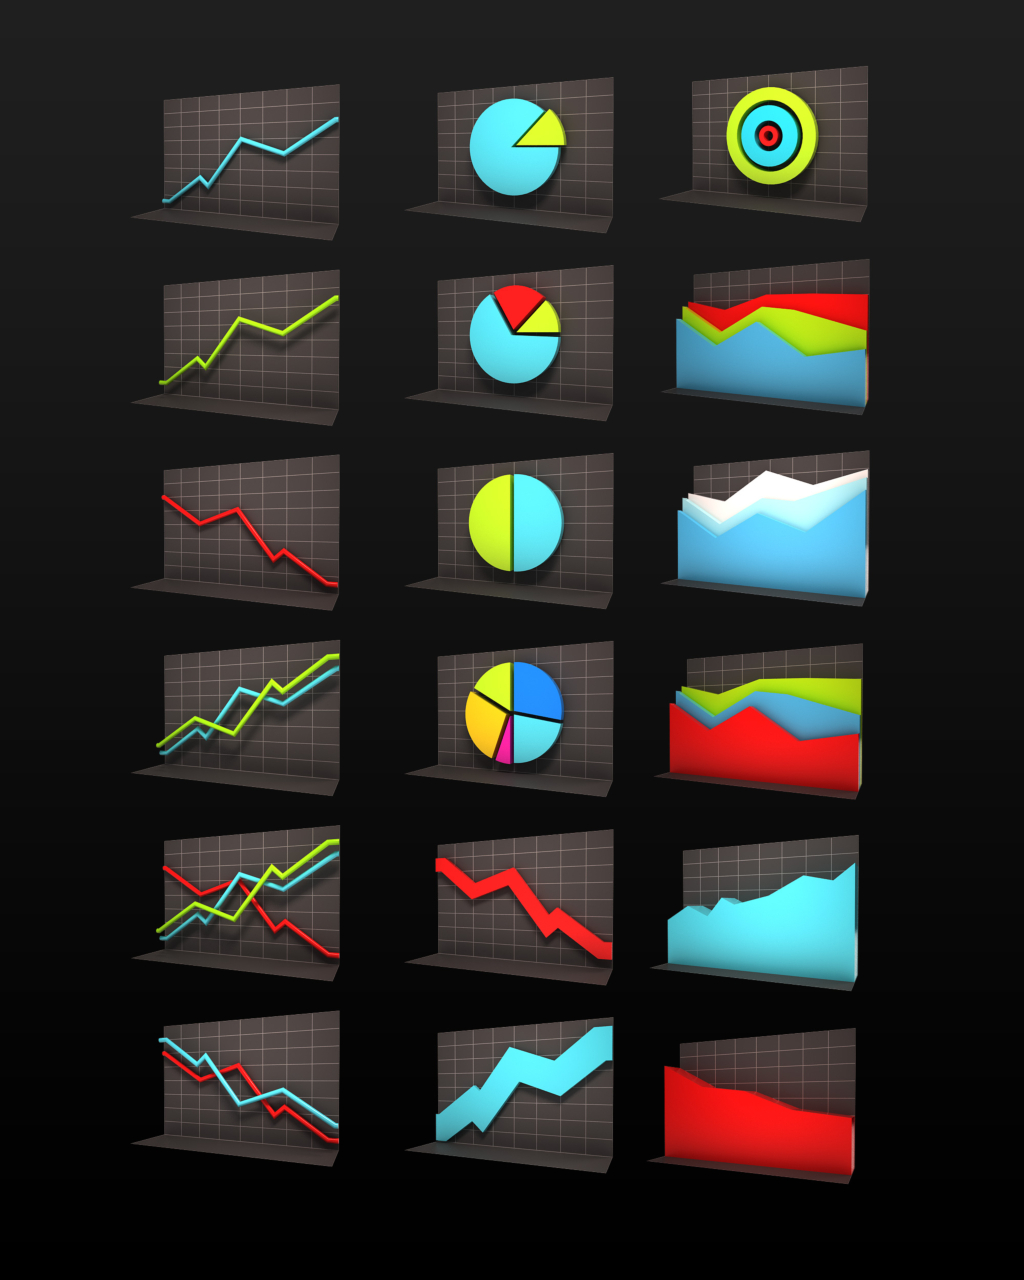 The Graphs